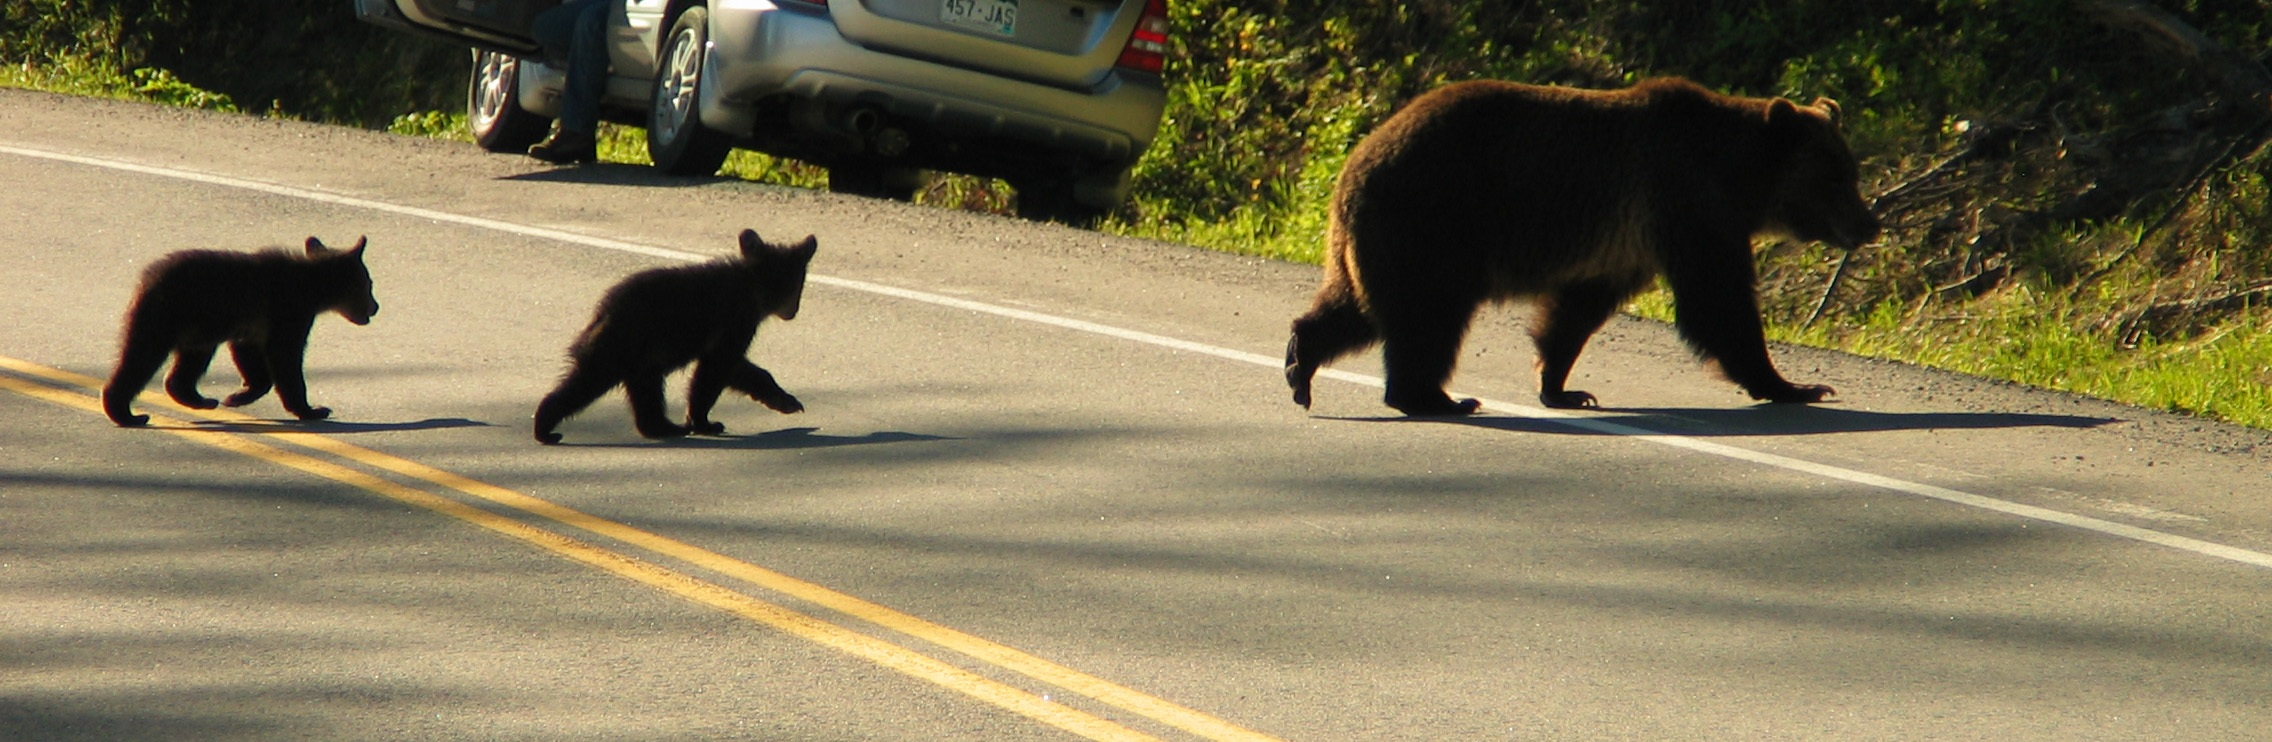 A grizzly mom and her cubs make their way across a busy road. (Photo Len Trout.)